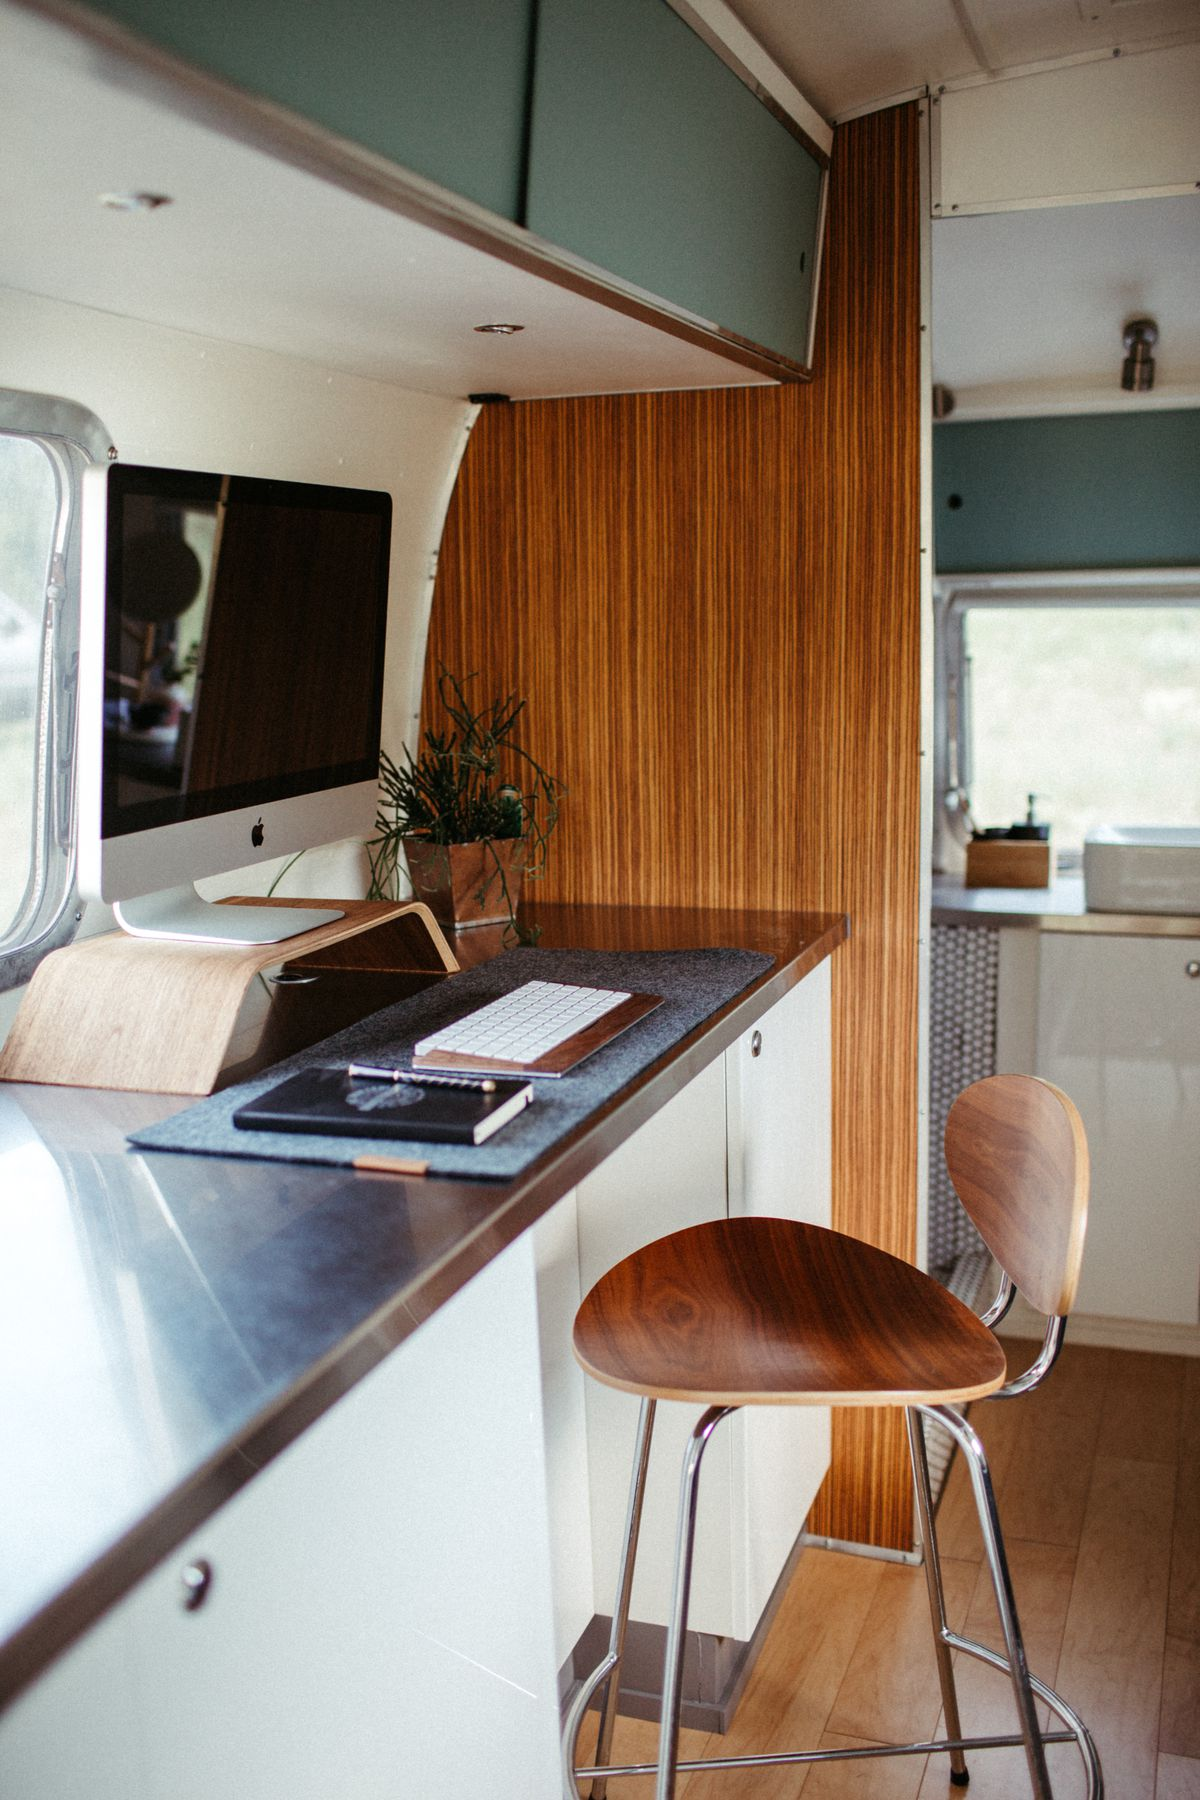 A work area inside the trailer has a wooden stool, computer, and stainless steel counters.